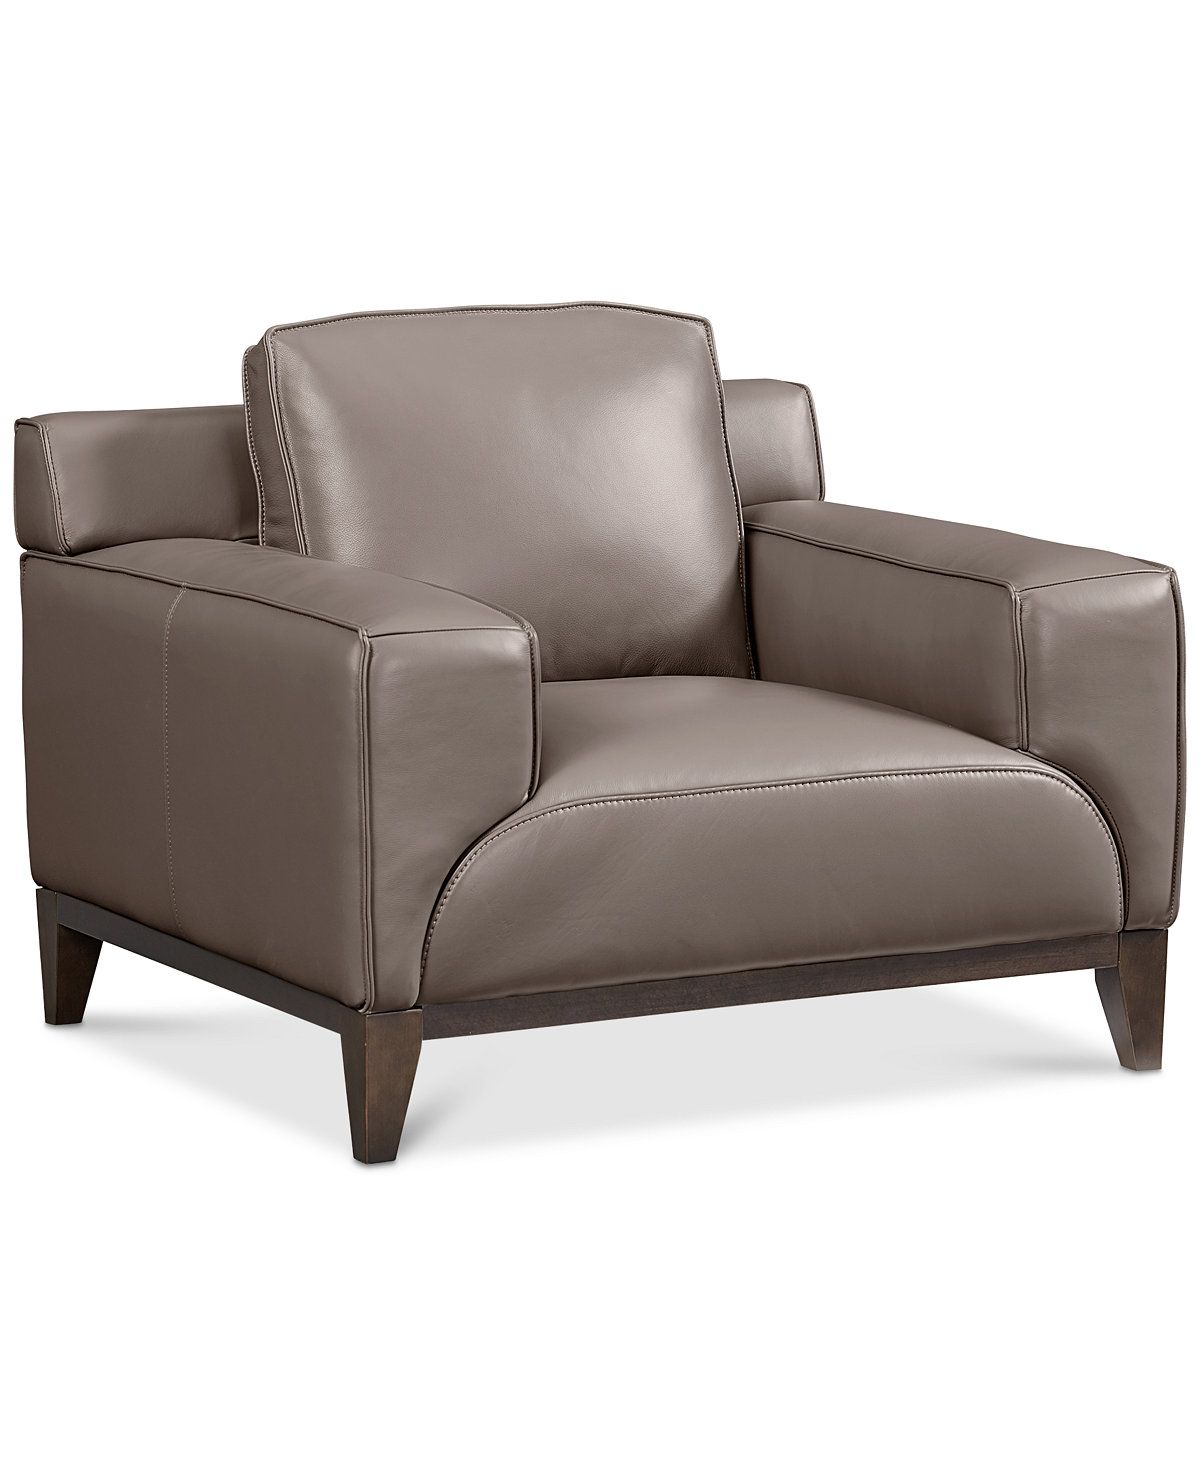 Ticino Leather Chair Created For Macy S Sale Closeout